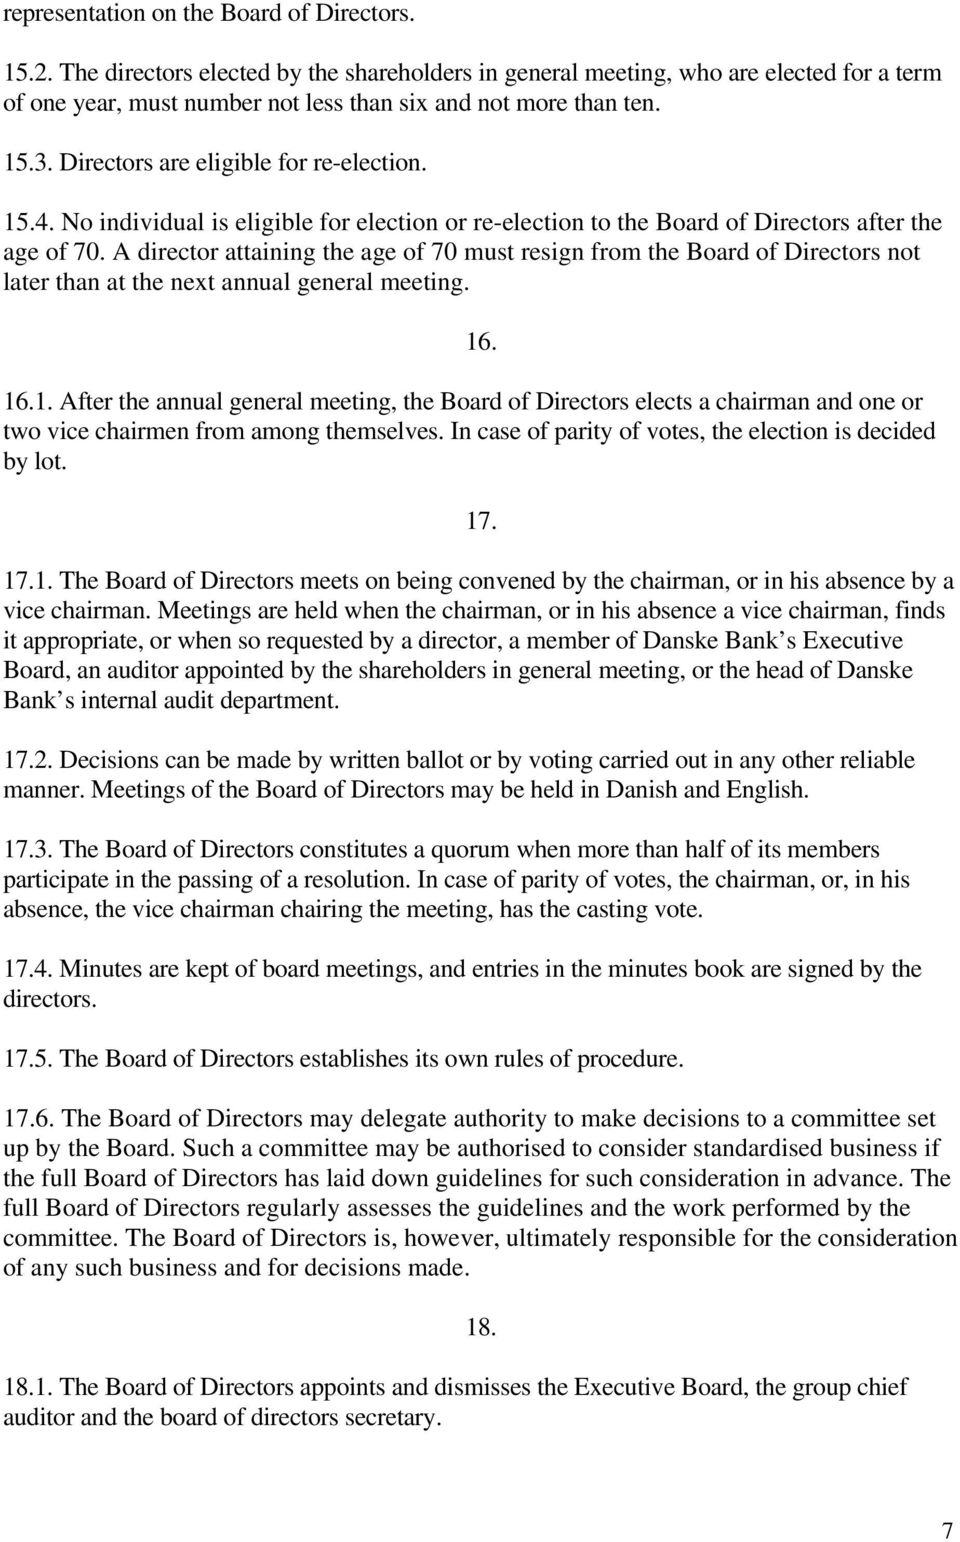 15.4. No individual is eligible for election or re-election to the Board of Directors after the age of 70.